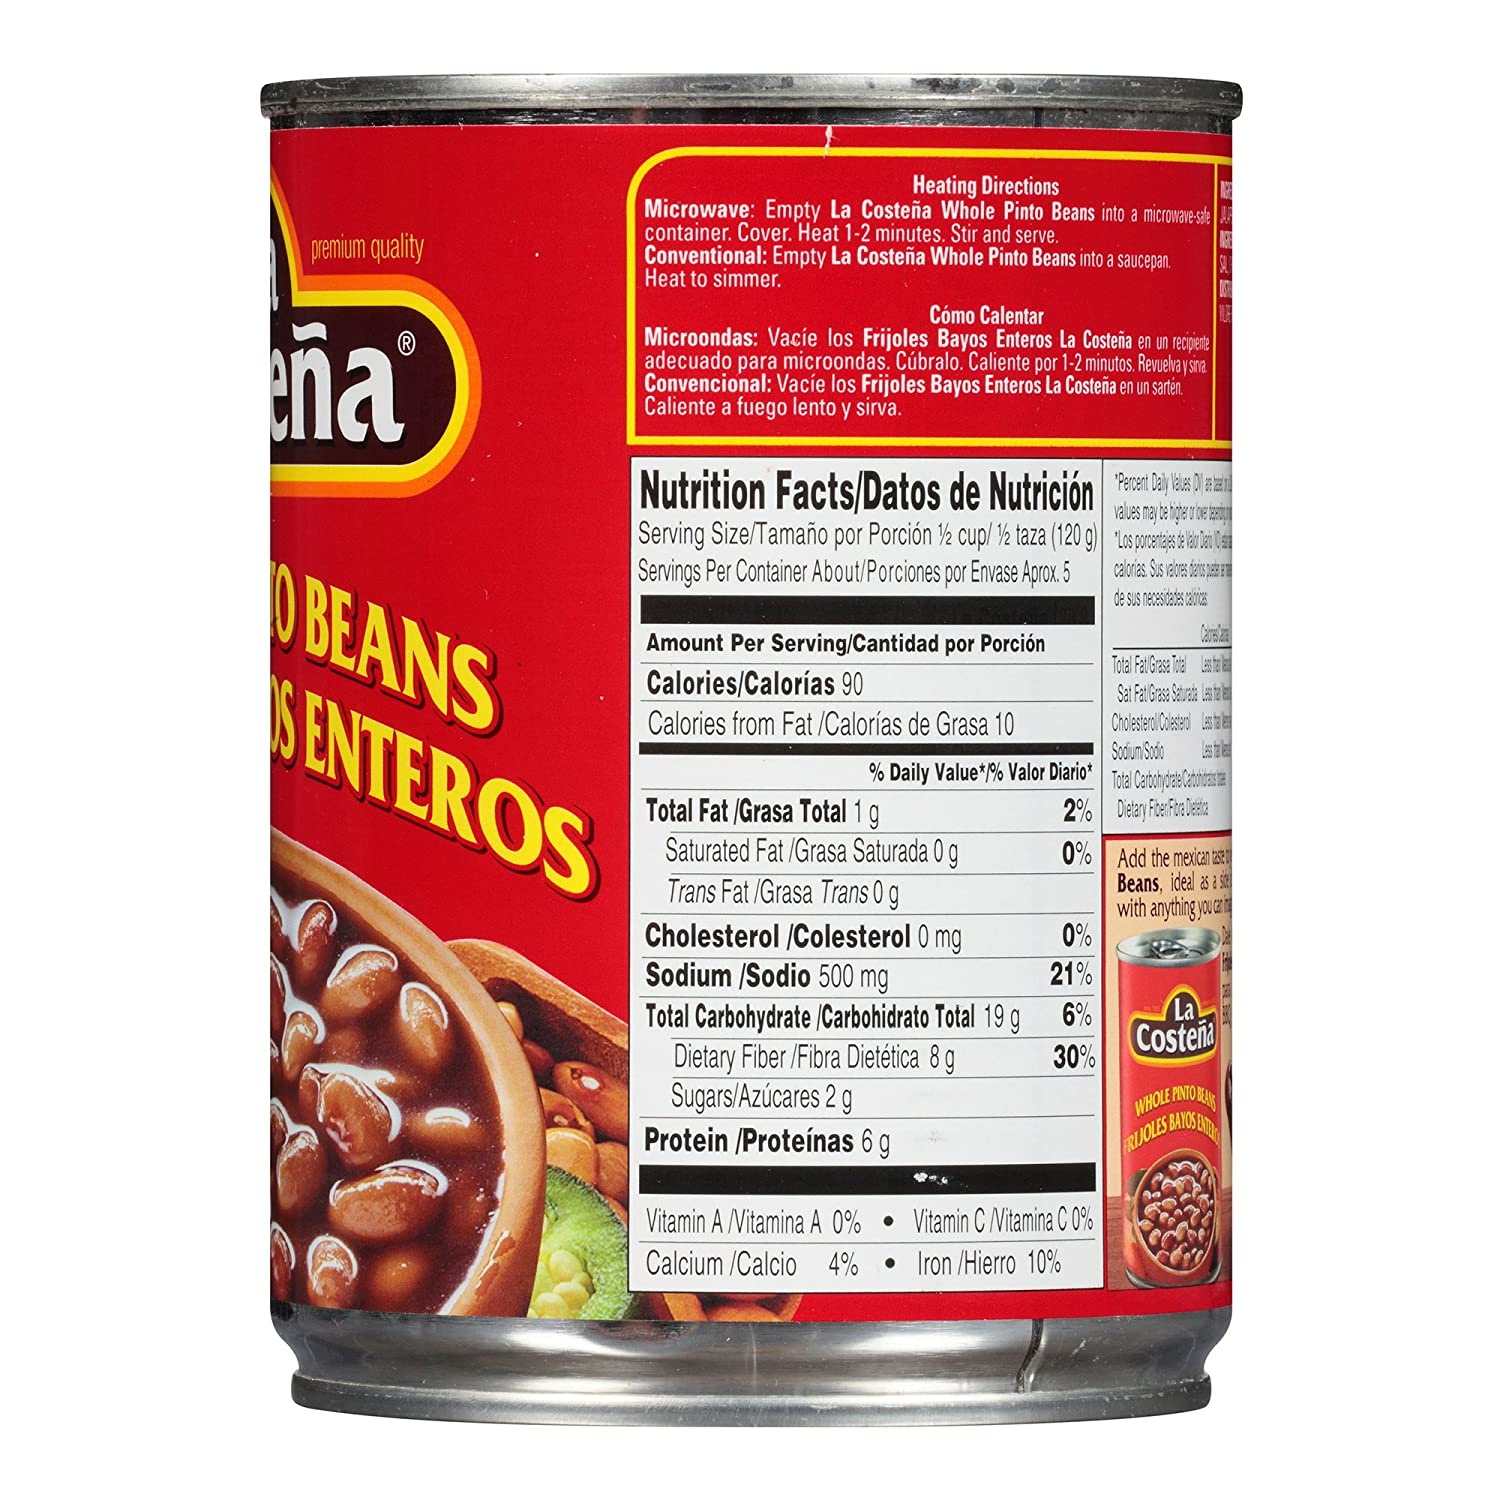 Amazon.com : La Costena Whole Pinto Beans, 19.75 oz : Grocery & Gourmet Food